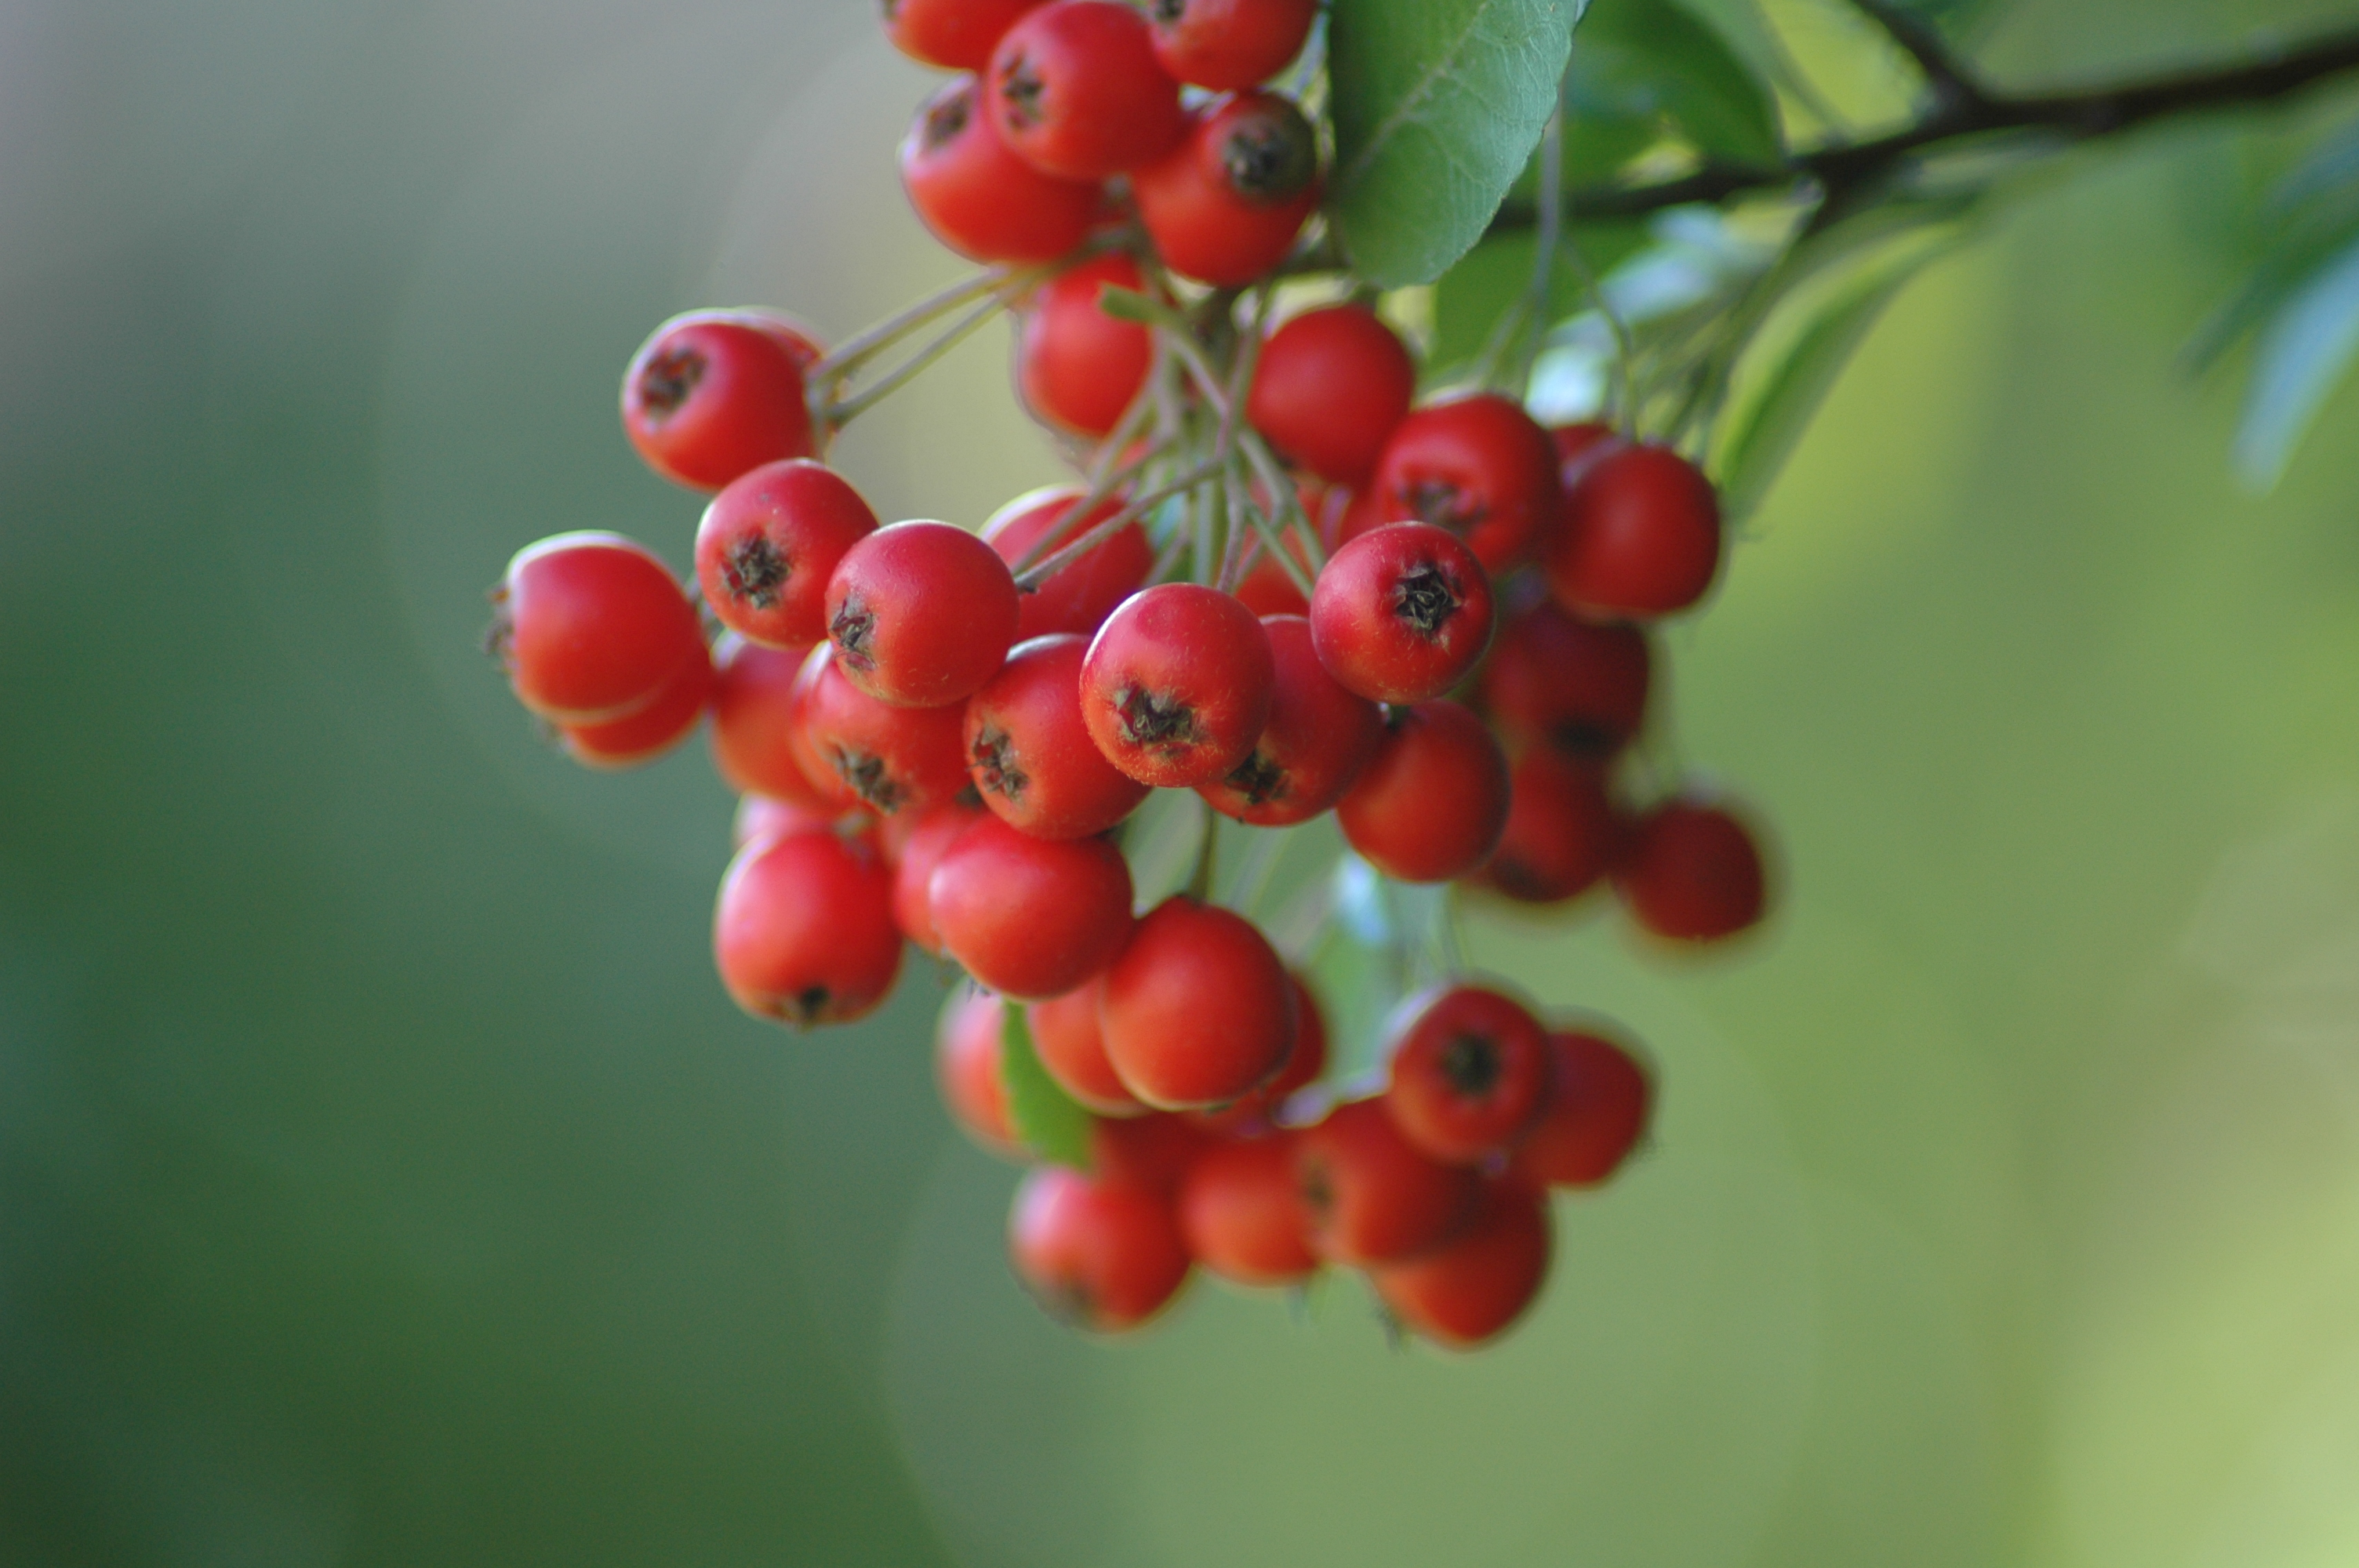 File:Red berry.jpg - Wikimedia Commons